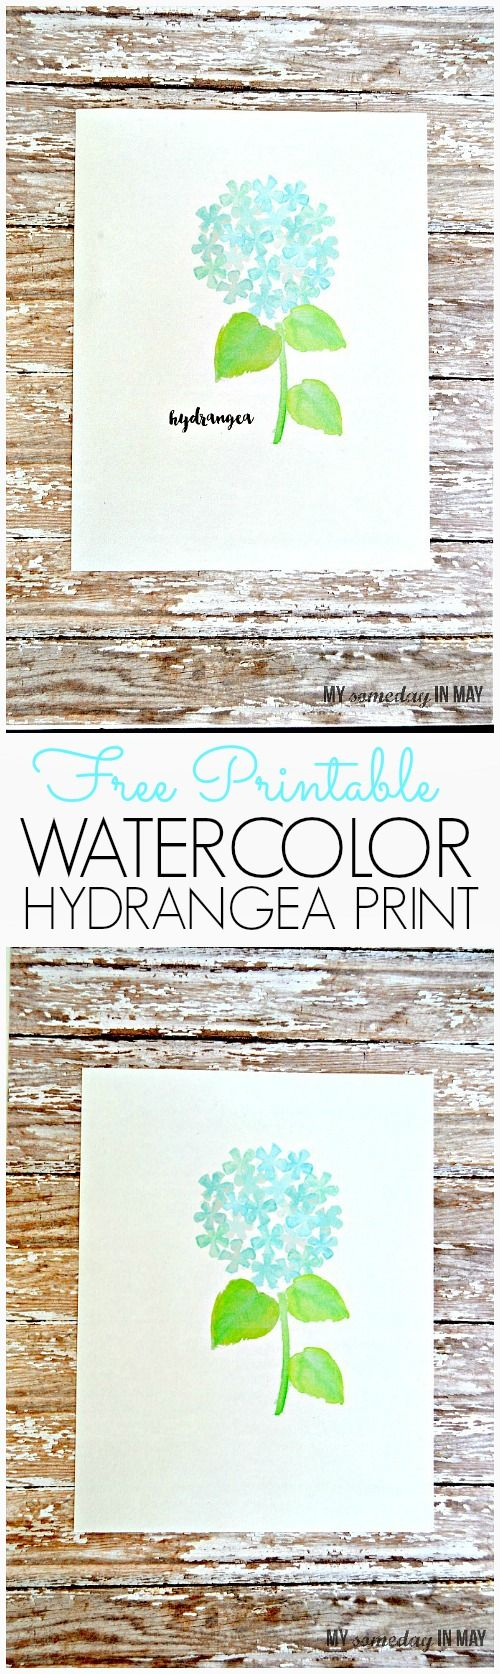 The best images about cards on pinterest watercolors blank